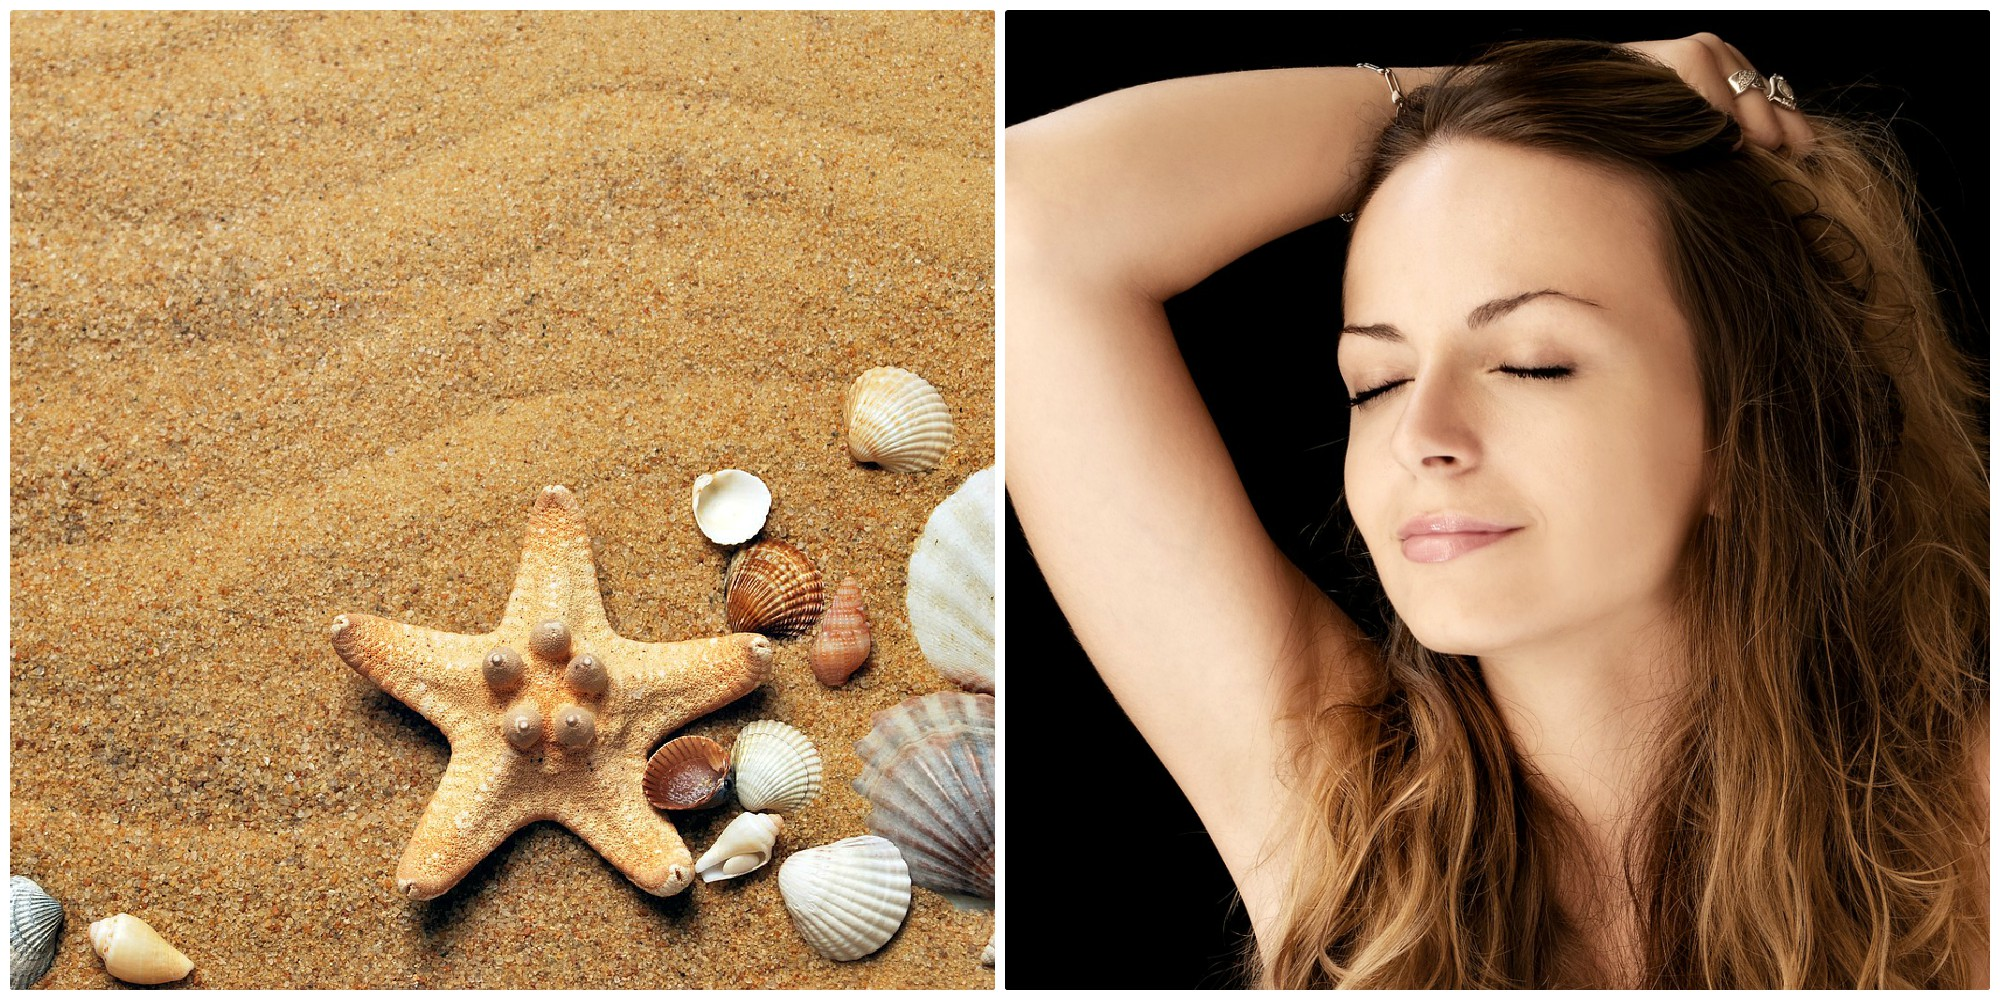 Sand, seashells, starfish and an ombre-haired woman smiles with closed eyes.